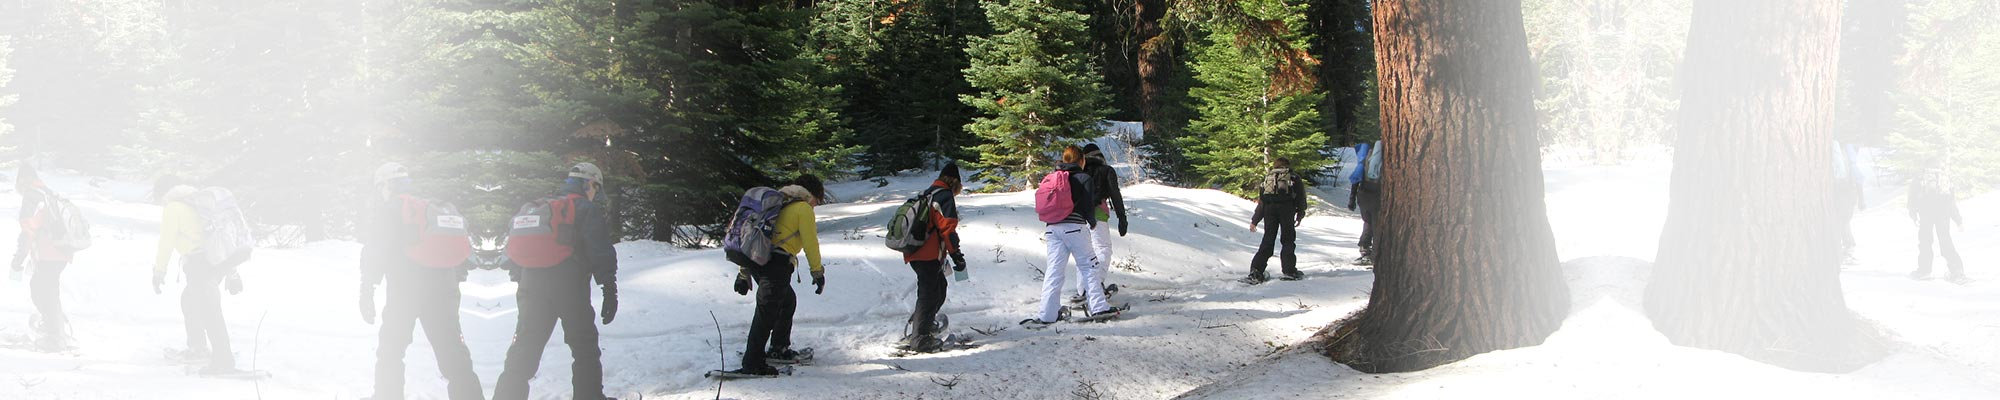 Montecito Sequoia Lodge, Snow